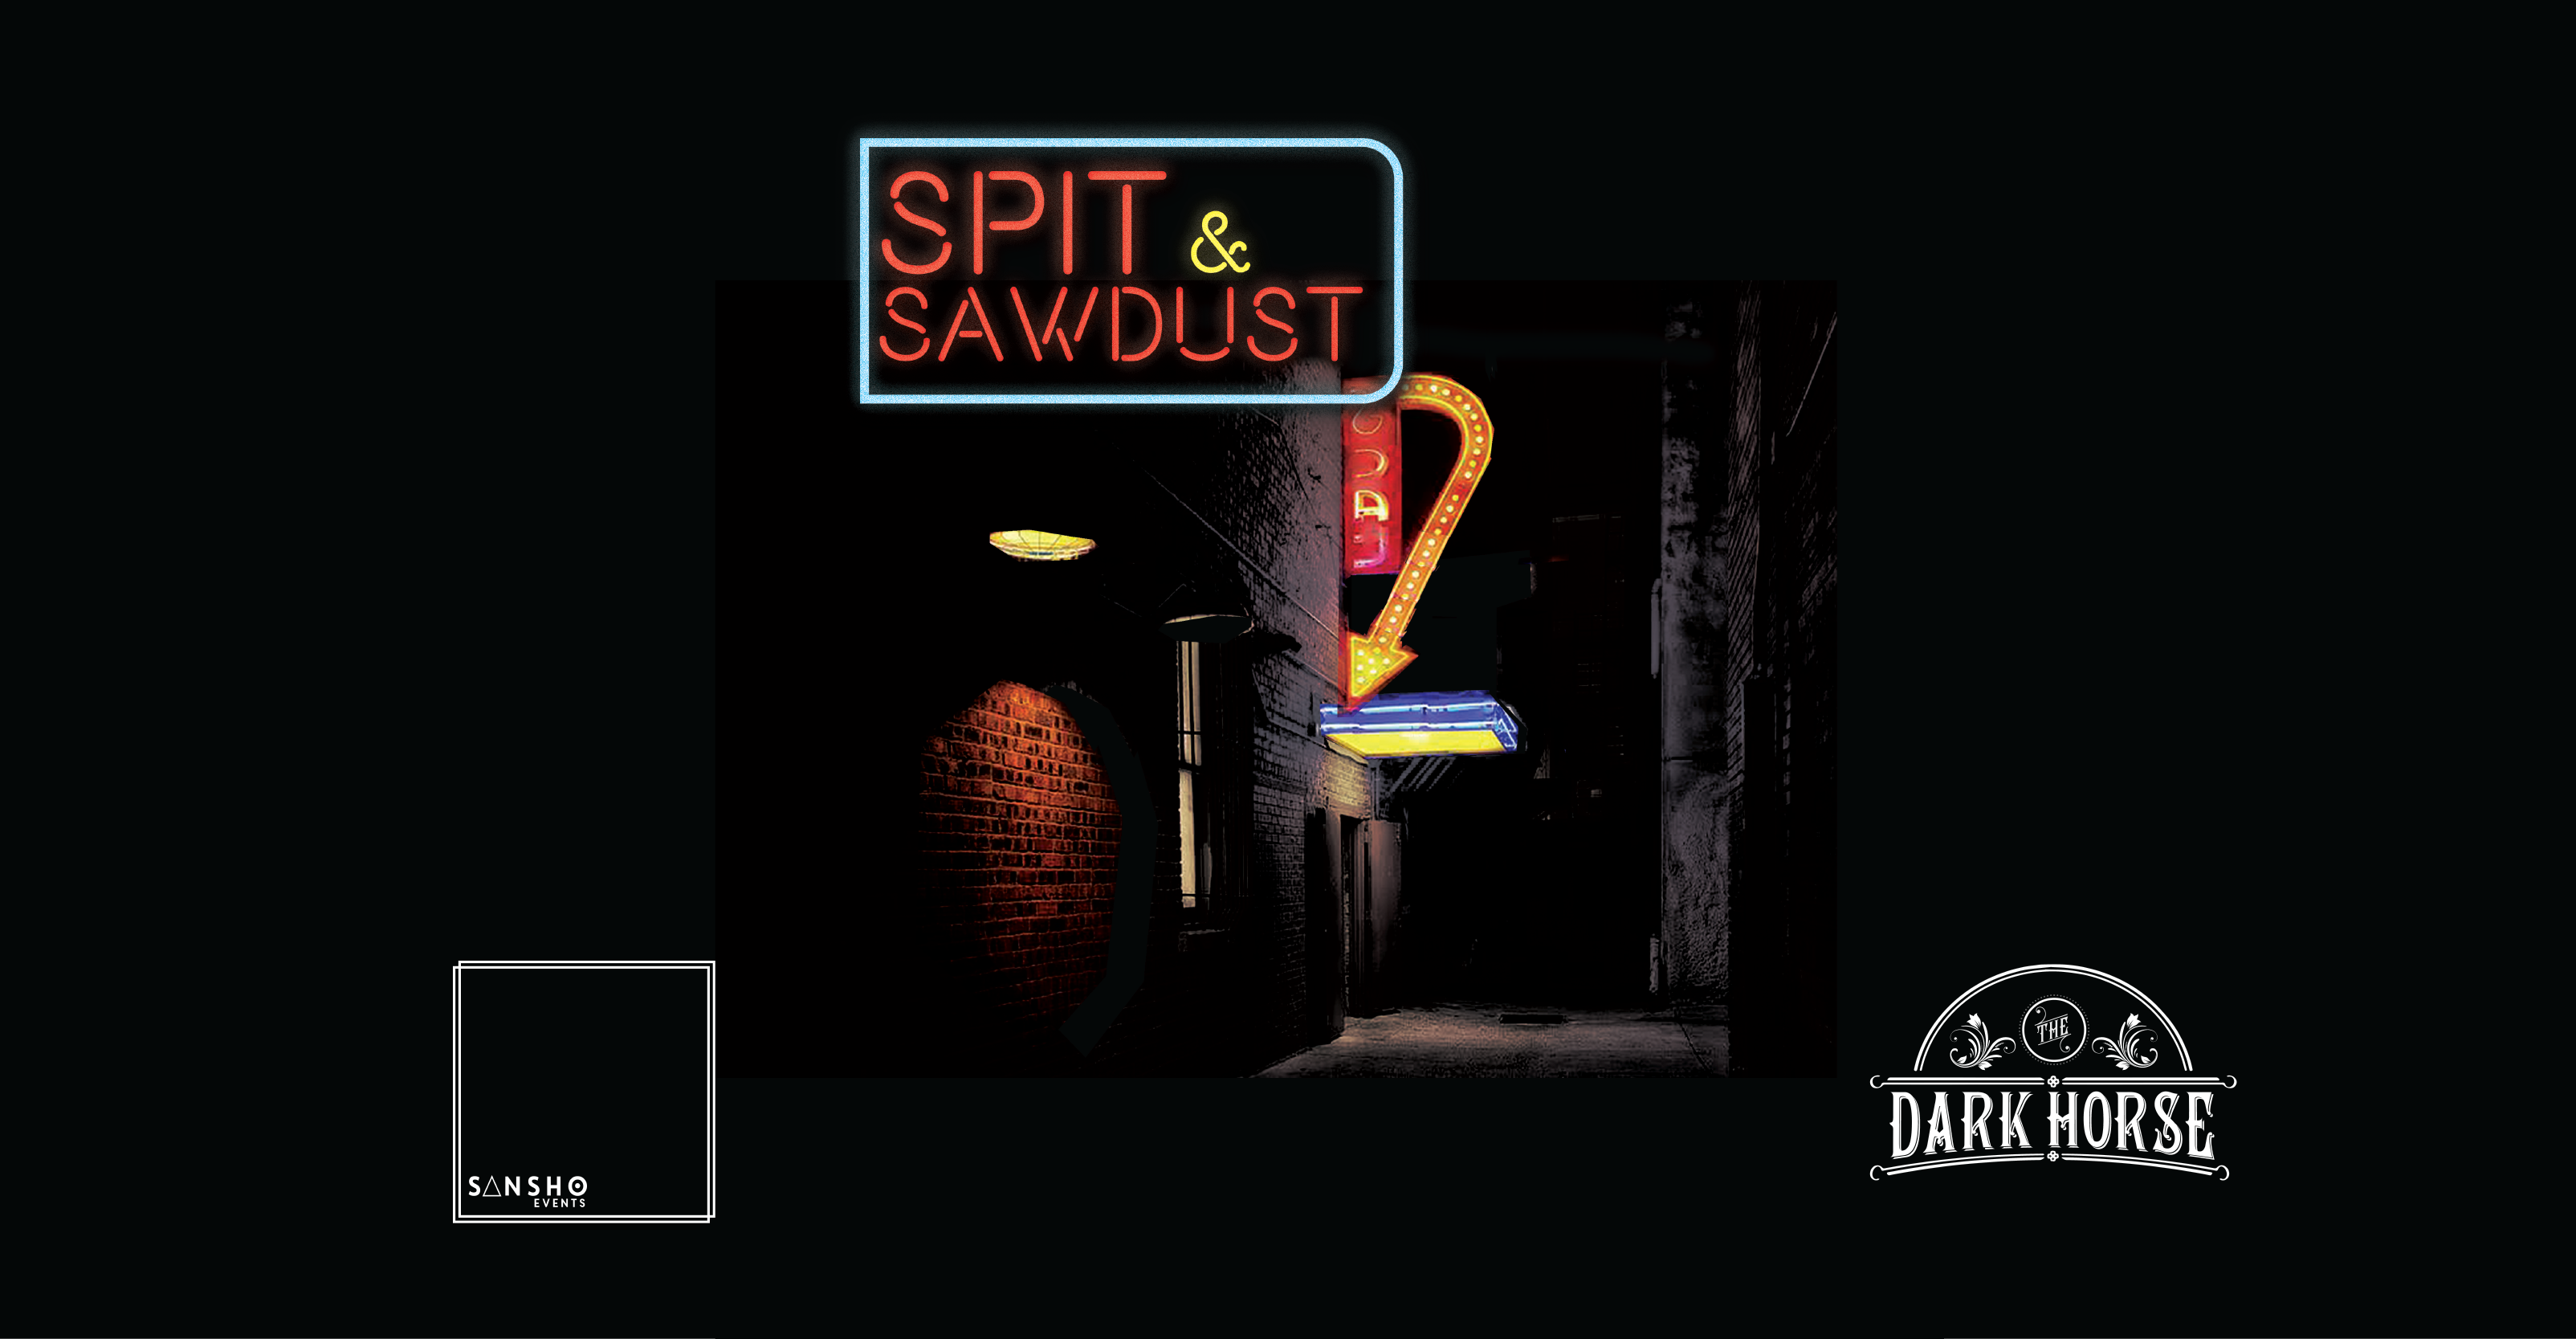 Spit & Sawdust: Whiskey Tasting, Smokehouse Food, Live Blues Bands